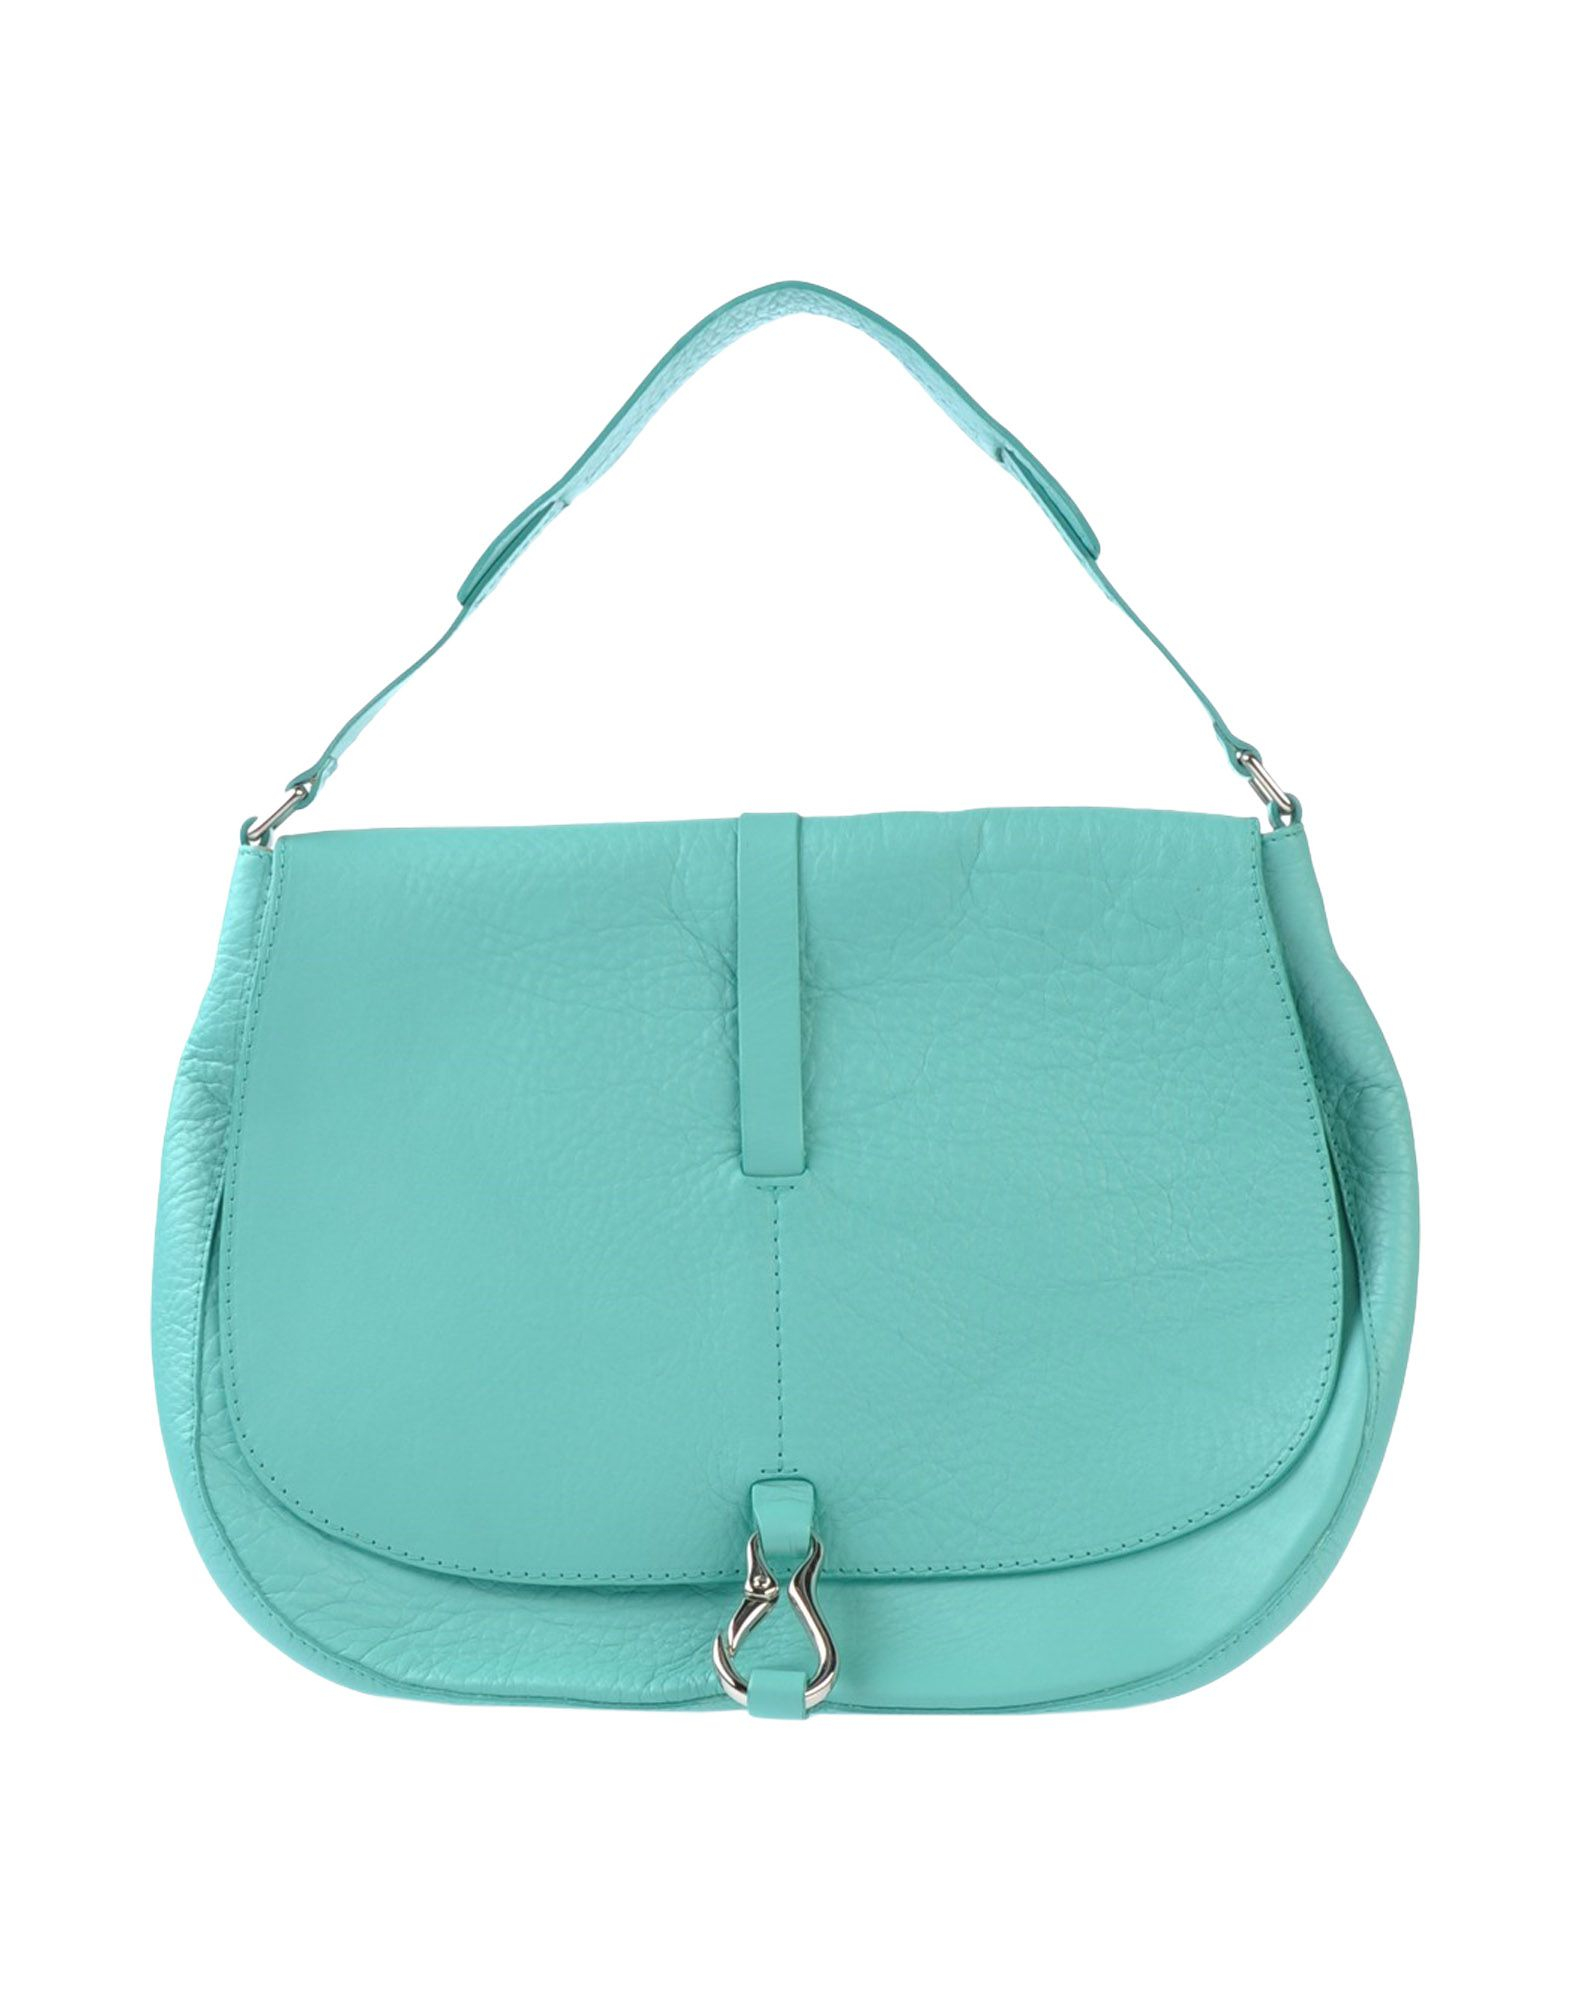 Orciani Handbag In Blue Lyst